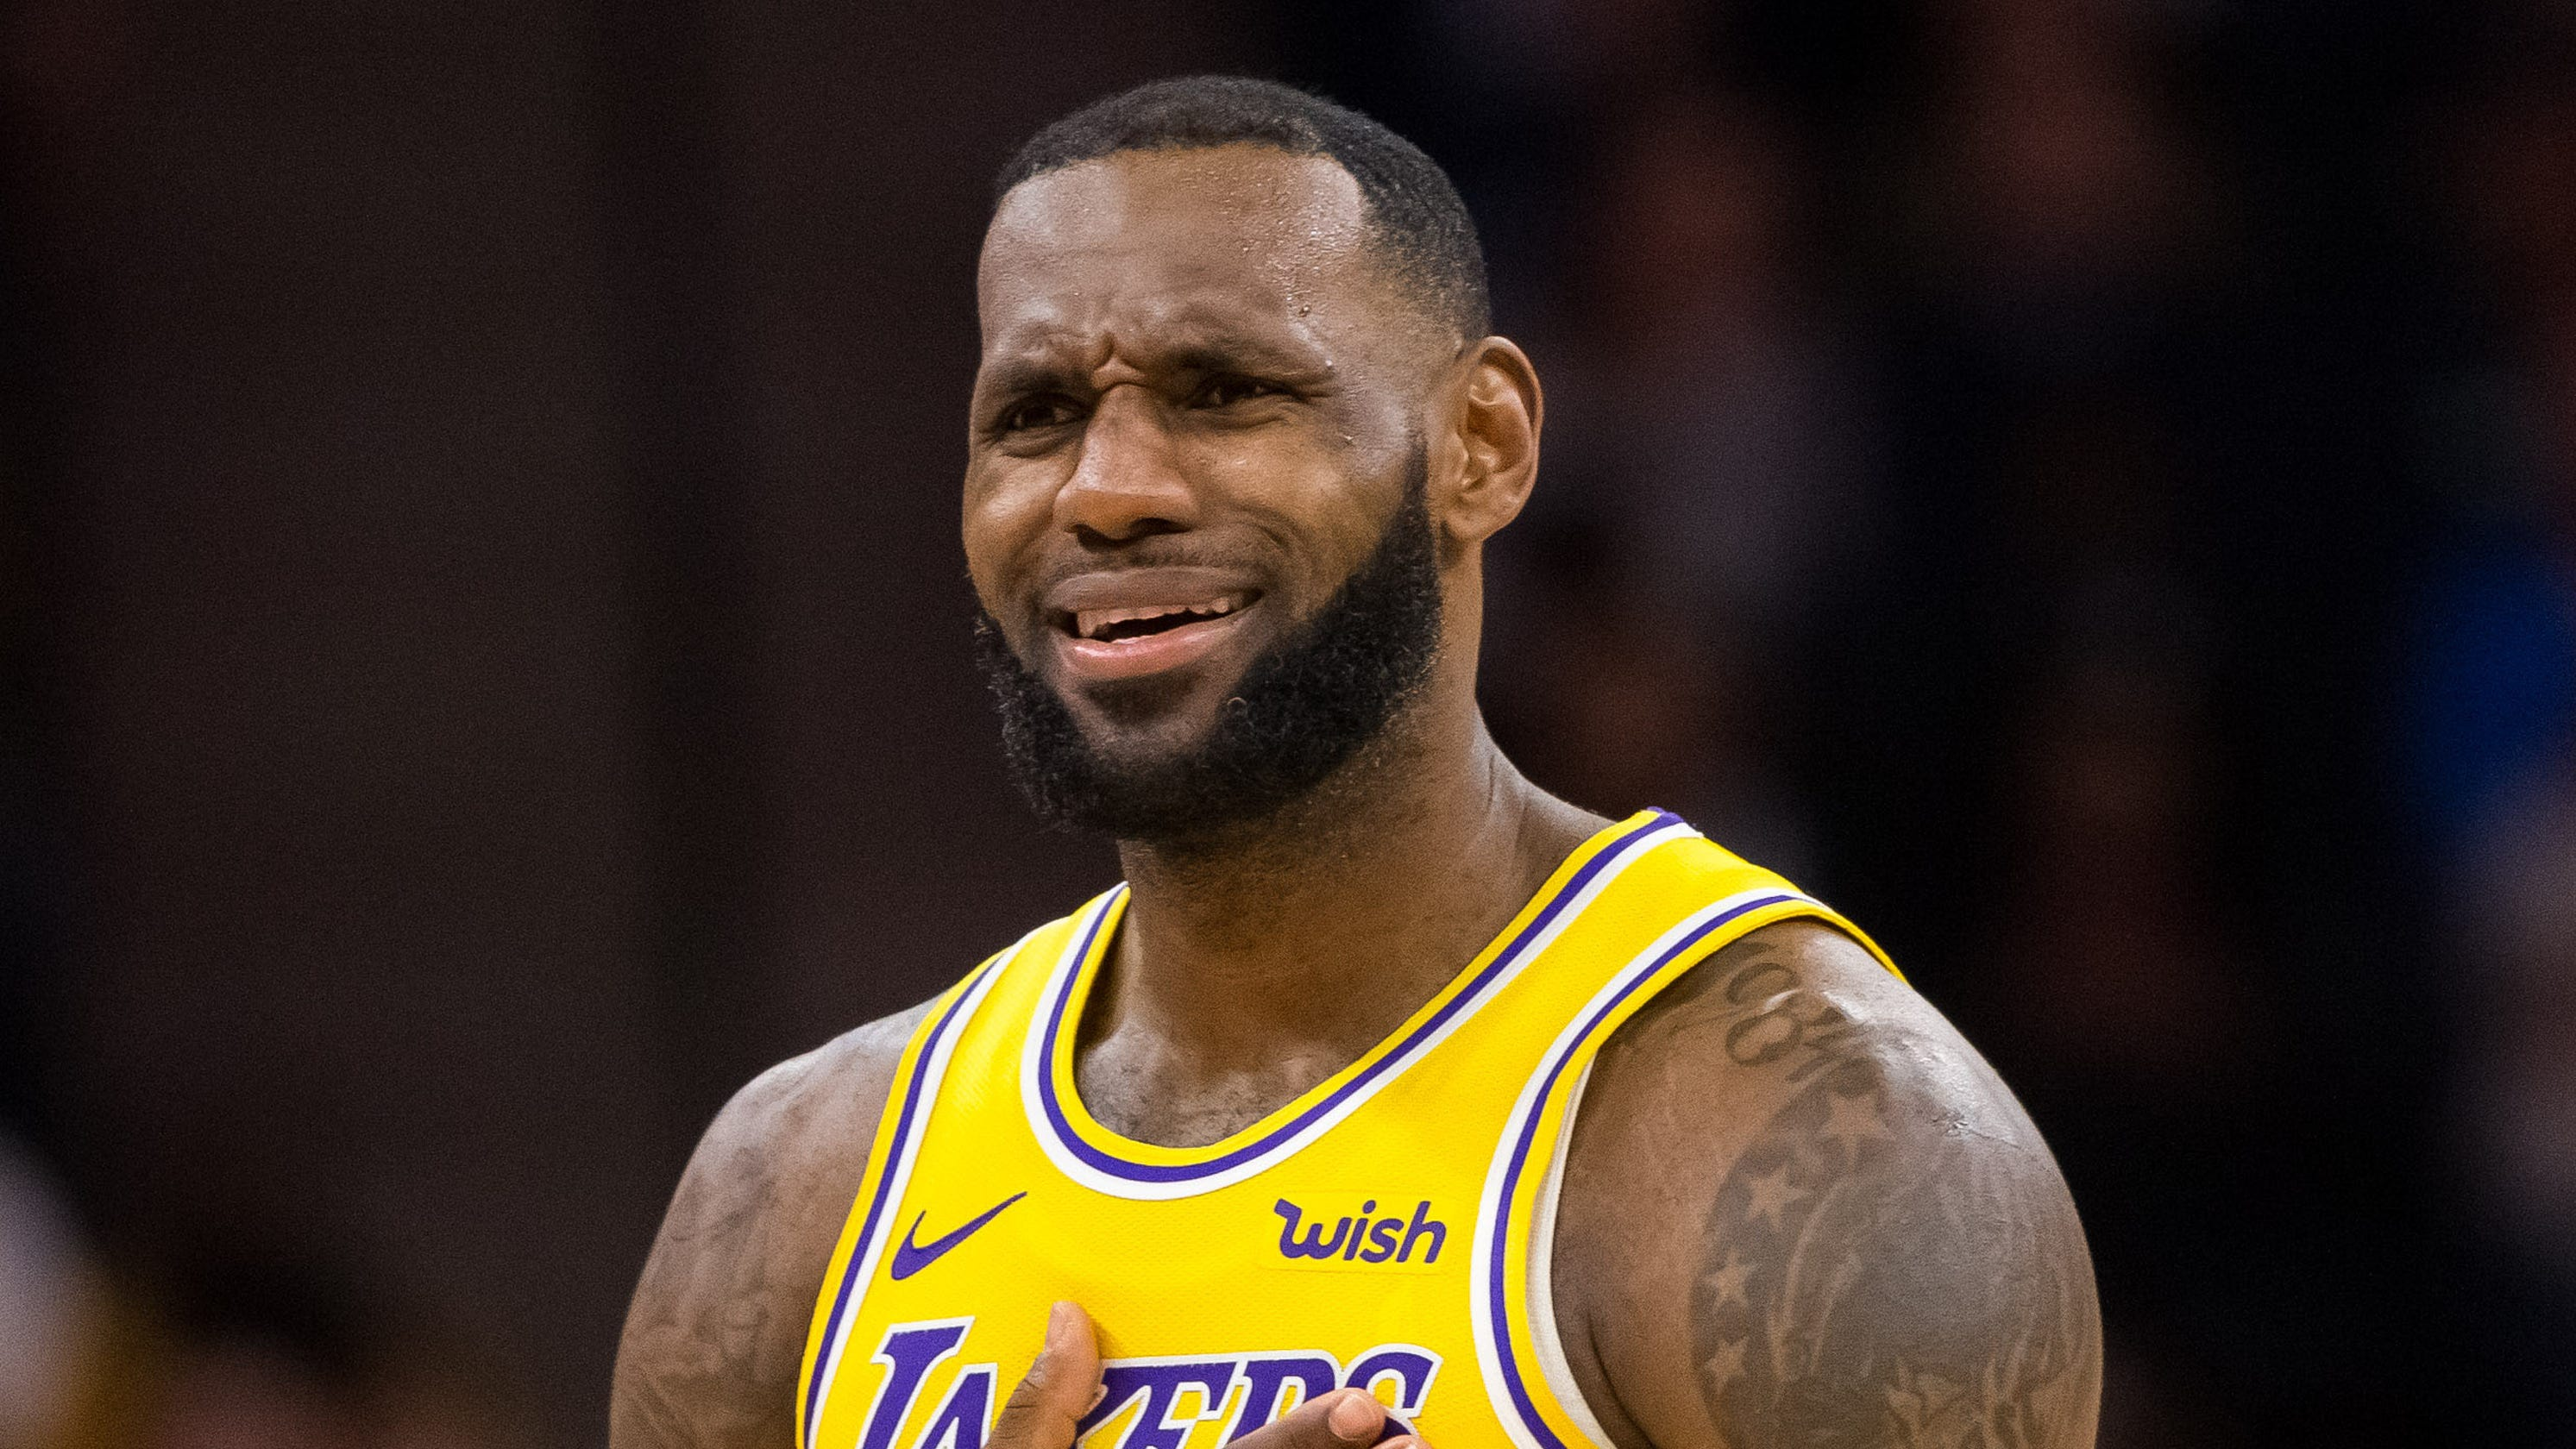 Lakers  LeBron James is already sick of losing bd363502d